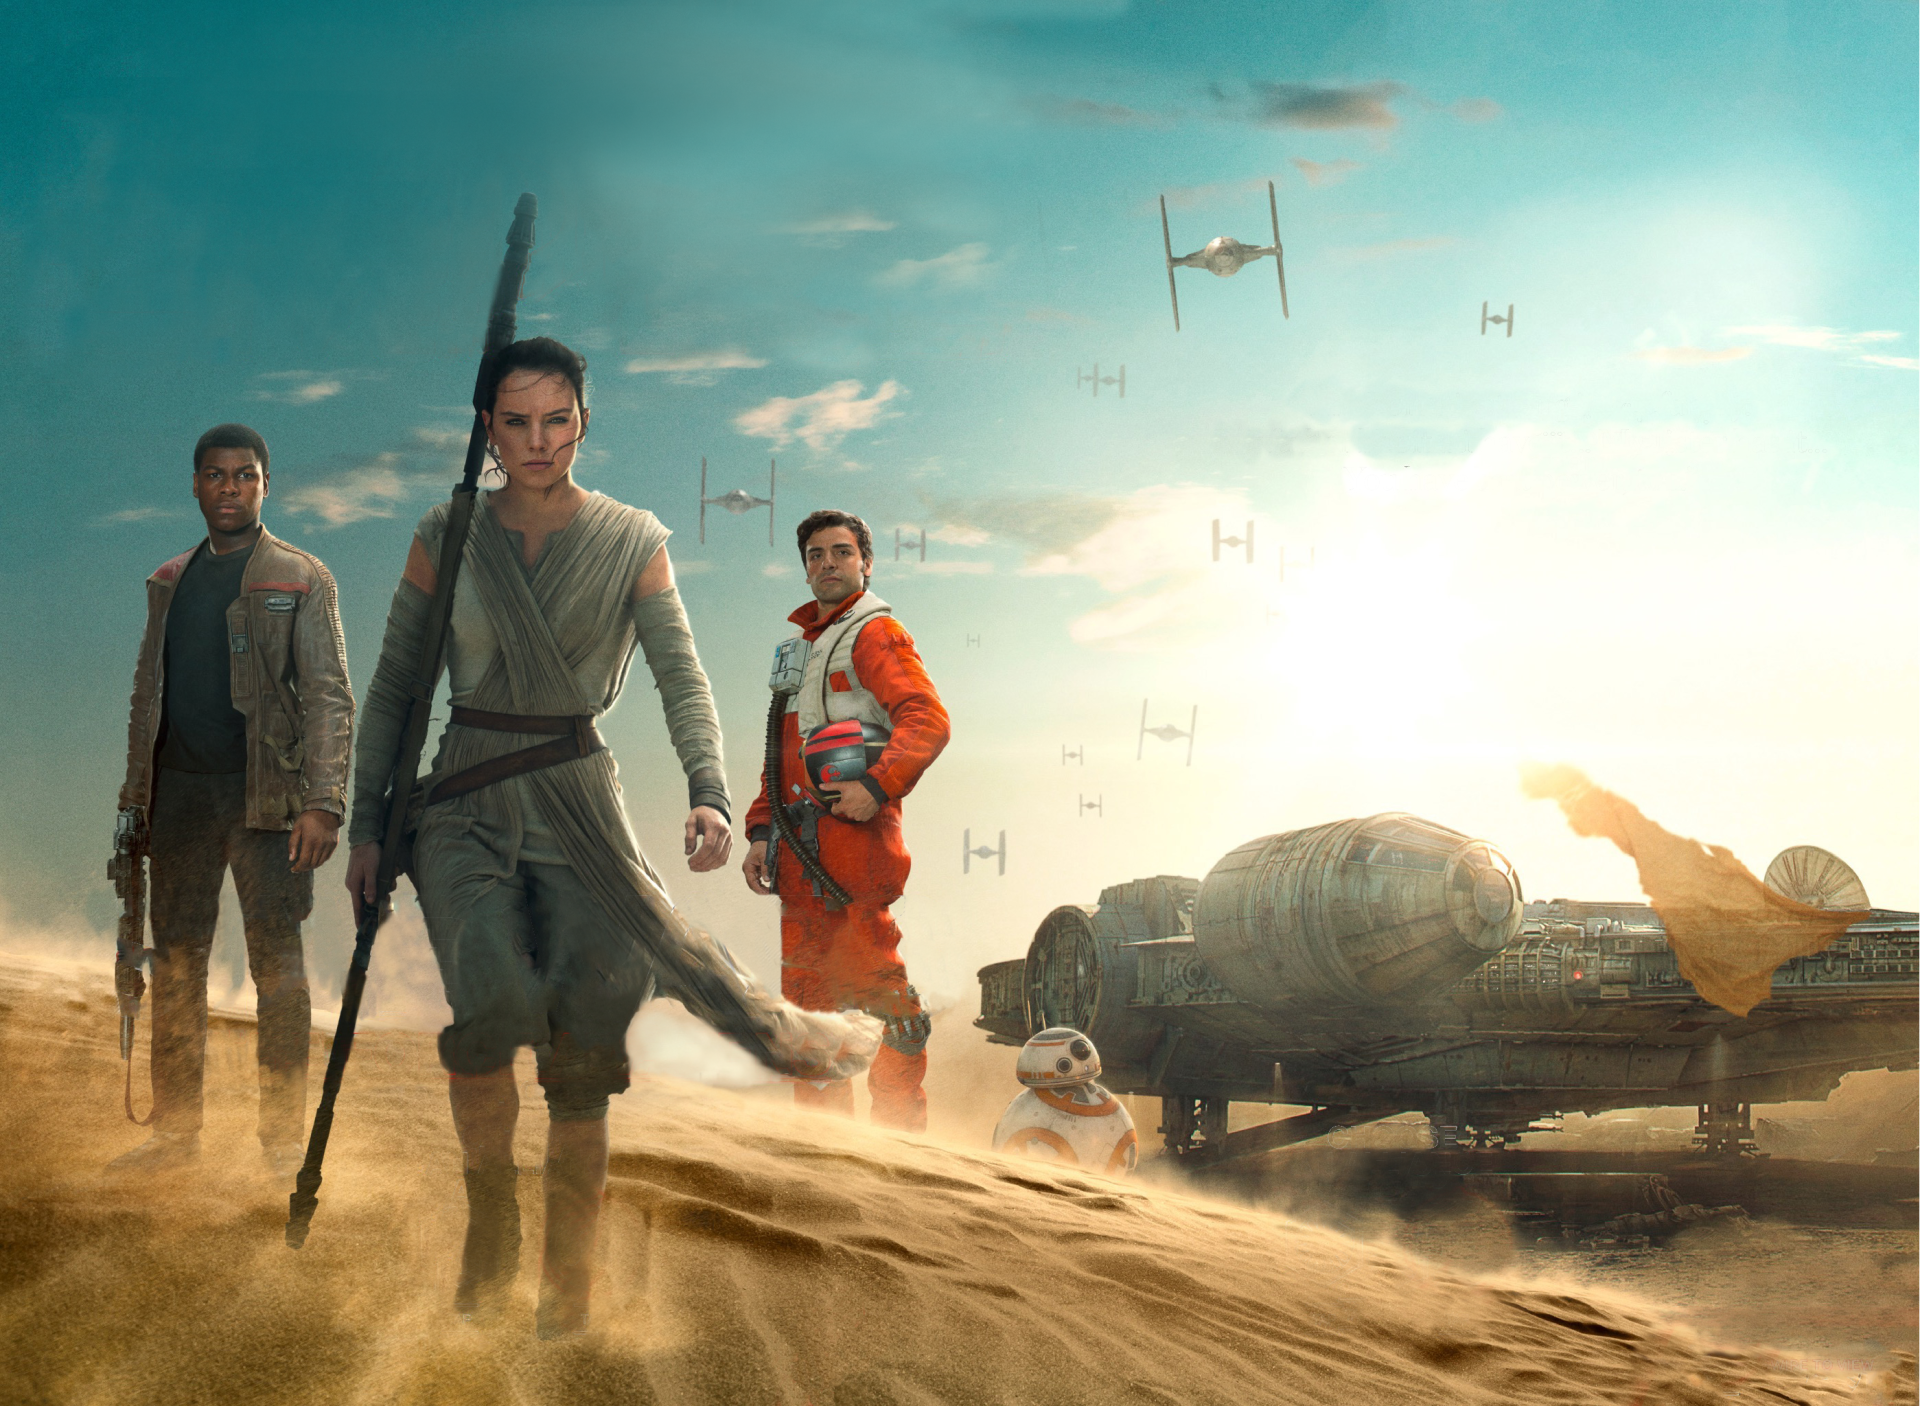 Movie - Star Wars Episode VII: The Force Awakens  Oscar Isaac Poe Dameron Daisy Ridley John Boyega Rey (Star Wars) Finn (Star Wars) BB-8 Star Wars Wallpaper